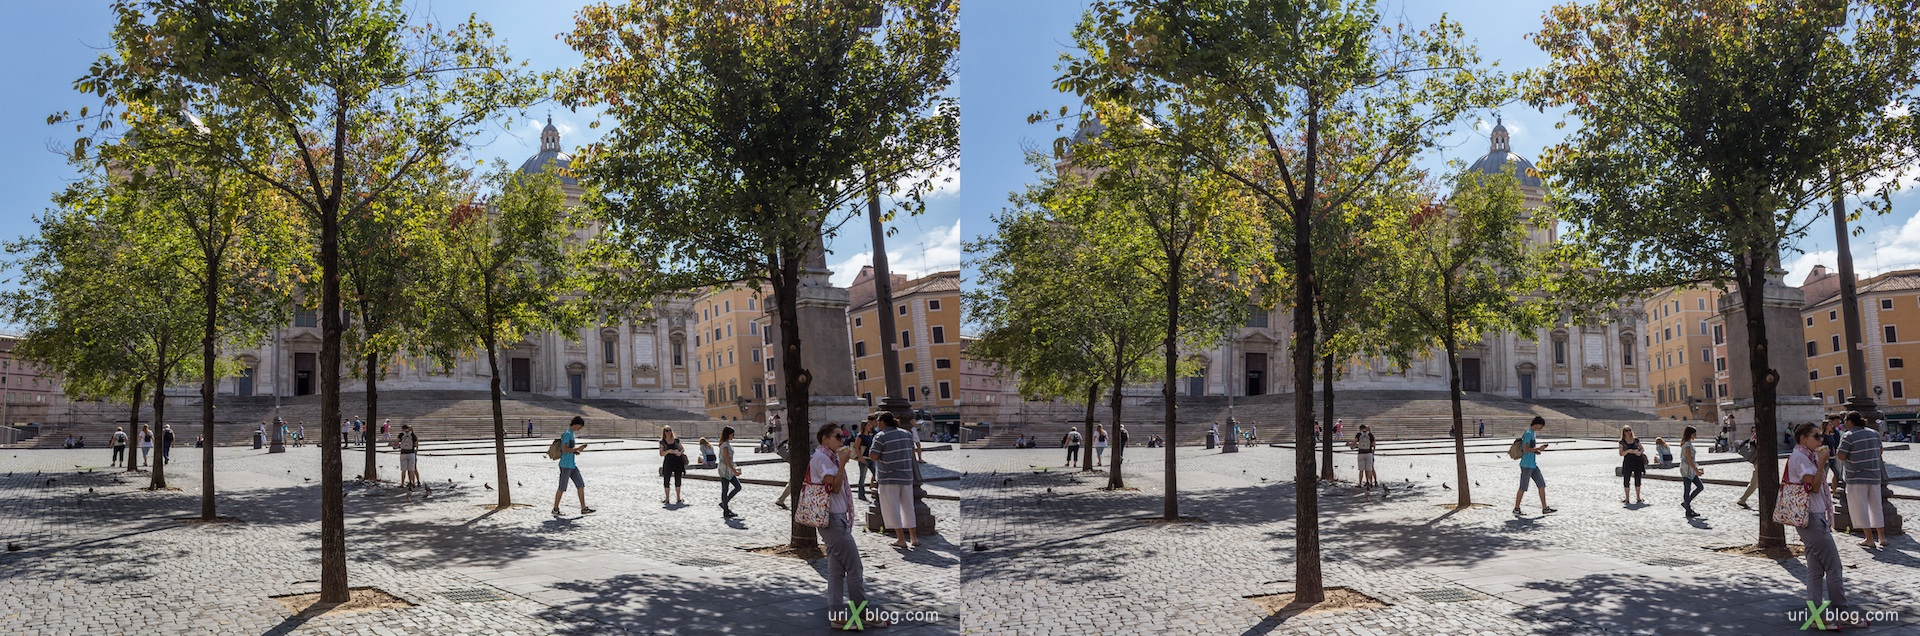 2012, Esquiline Square, trees, Basilica di Santa Maria Maggiore church, Rome, Italy, Europe, 3D, stereo pair, cross-eyed, crossview, cross view stereo pair